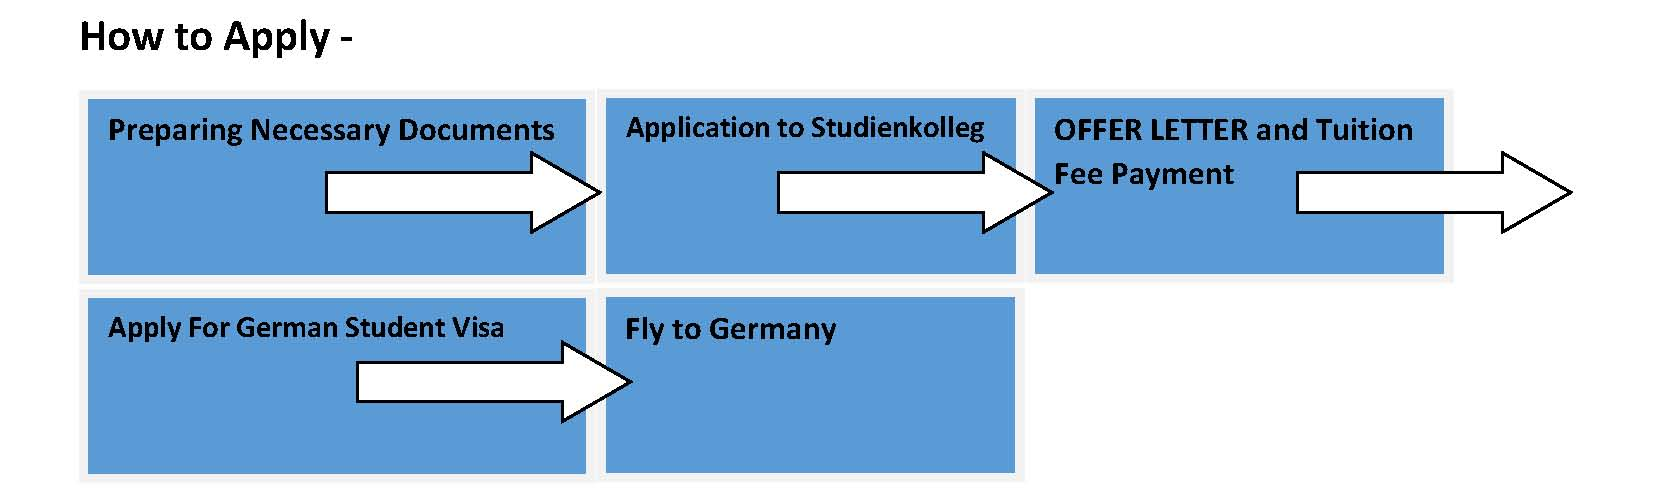 Bachelor Degree in Germany- Studienkolleg EduOptions Germany